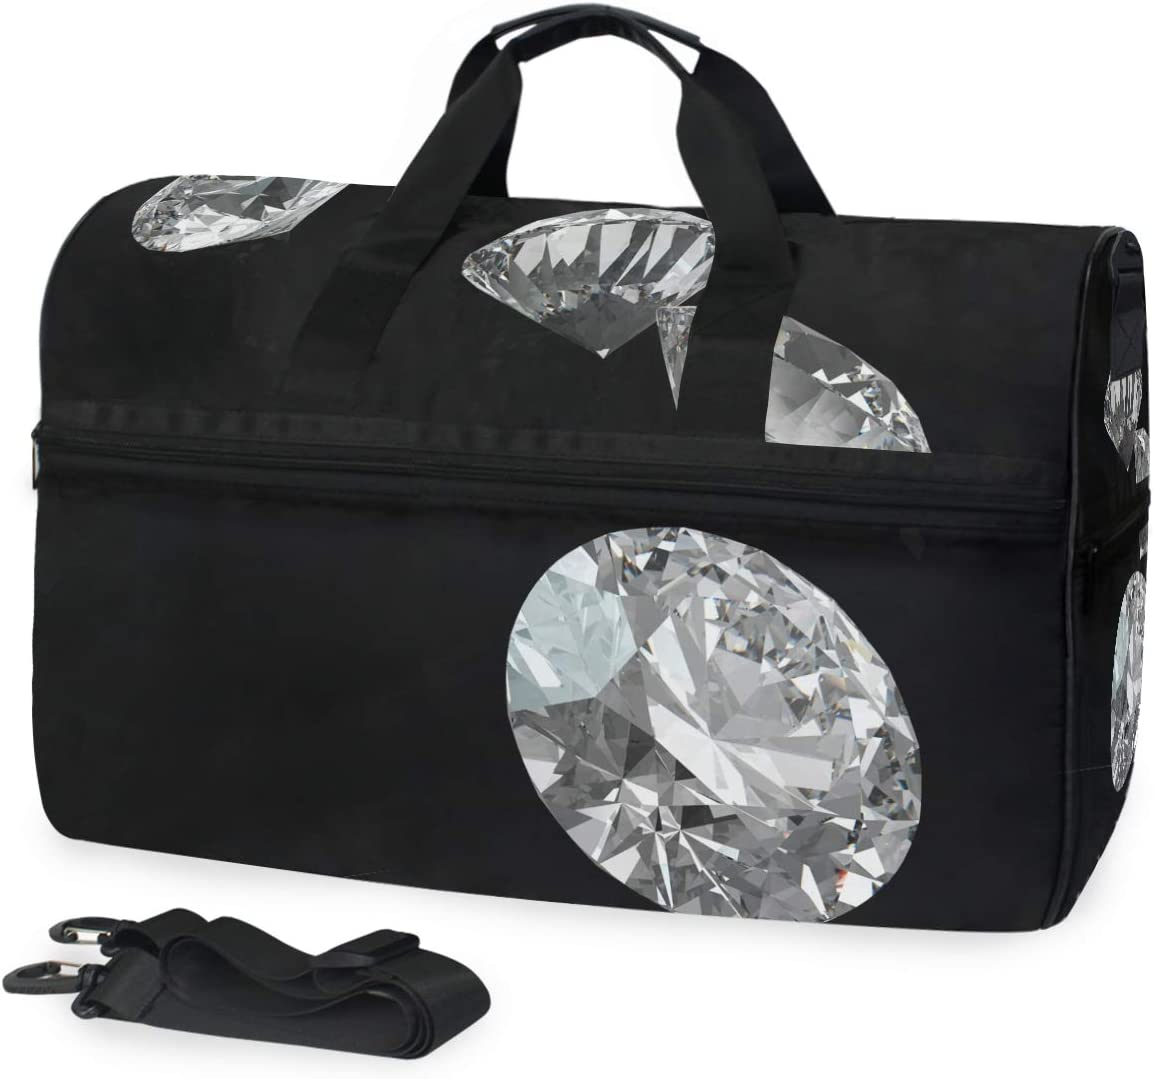 FAJRO Duffle Bag for Women Men Shinning Diamond Travel Duffel Bag Large Size Water-proof Tear Resistant